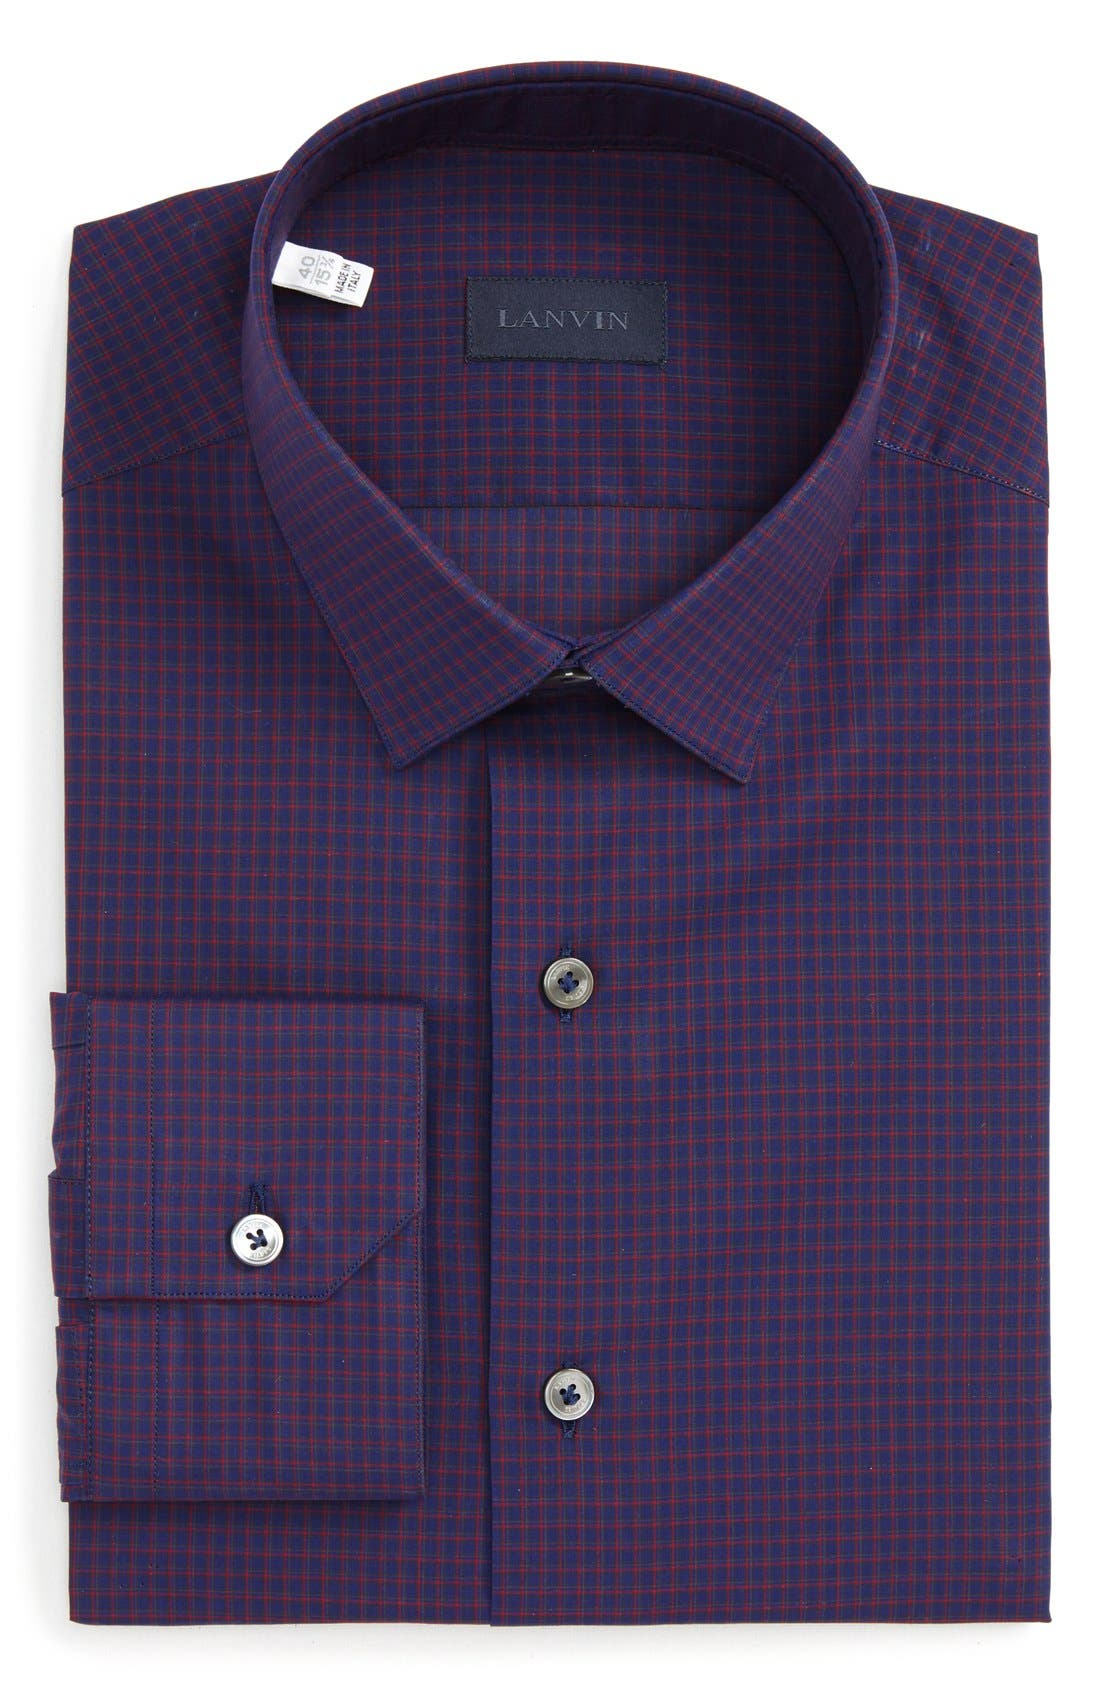 Lanvin Trim Fit Check Dress Shirt